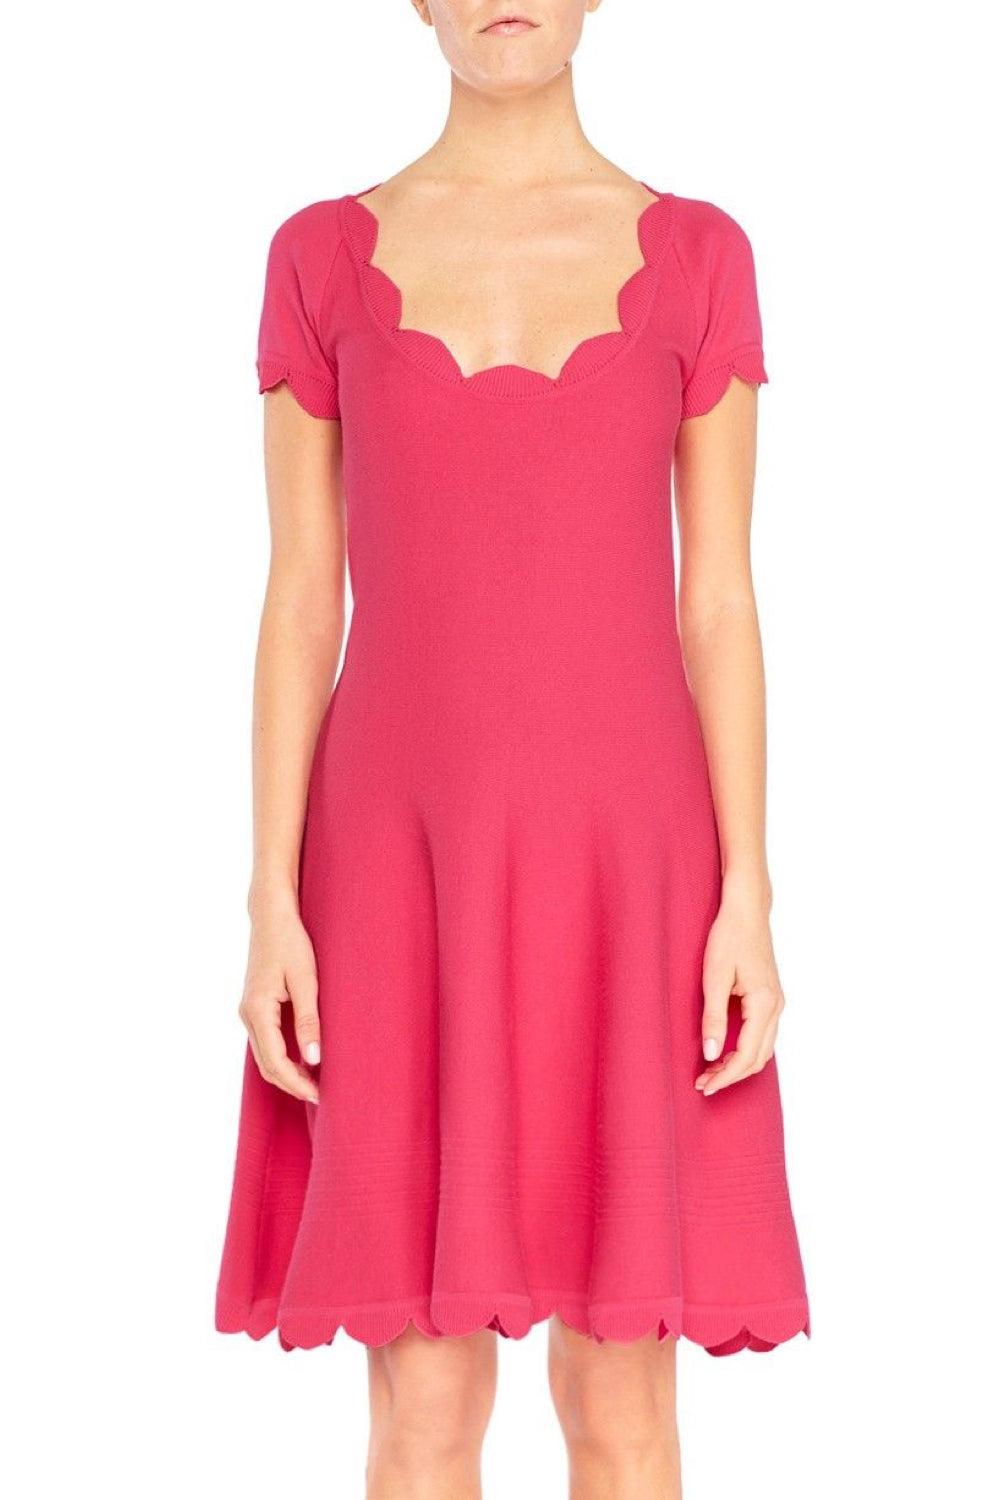 Scalloped Knit Dress - The Bobby Boga